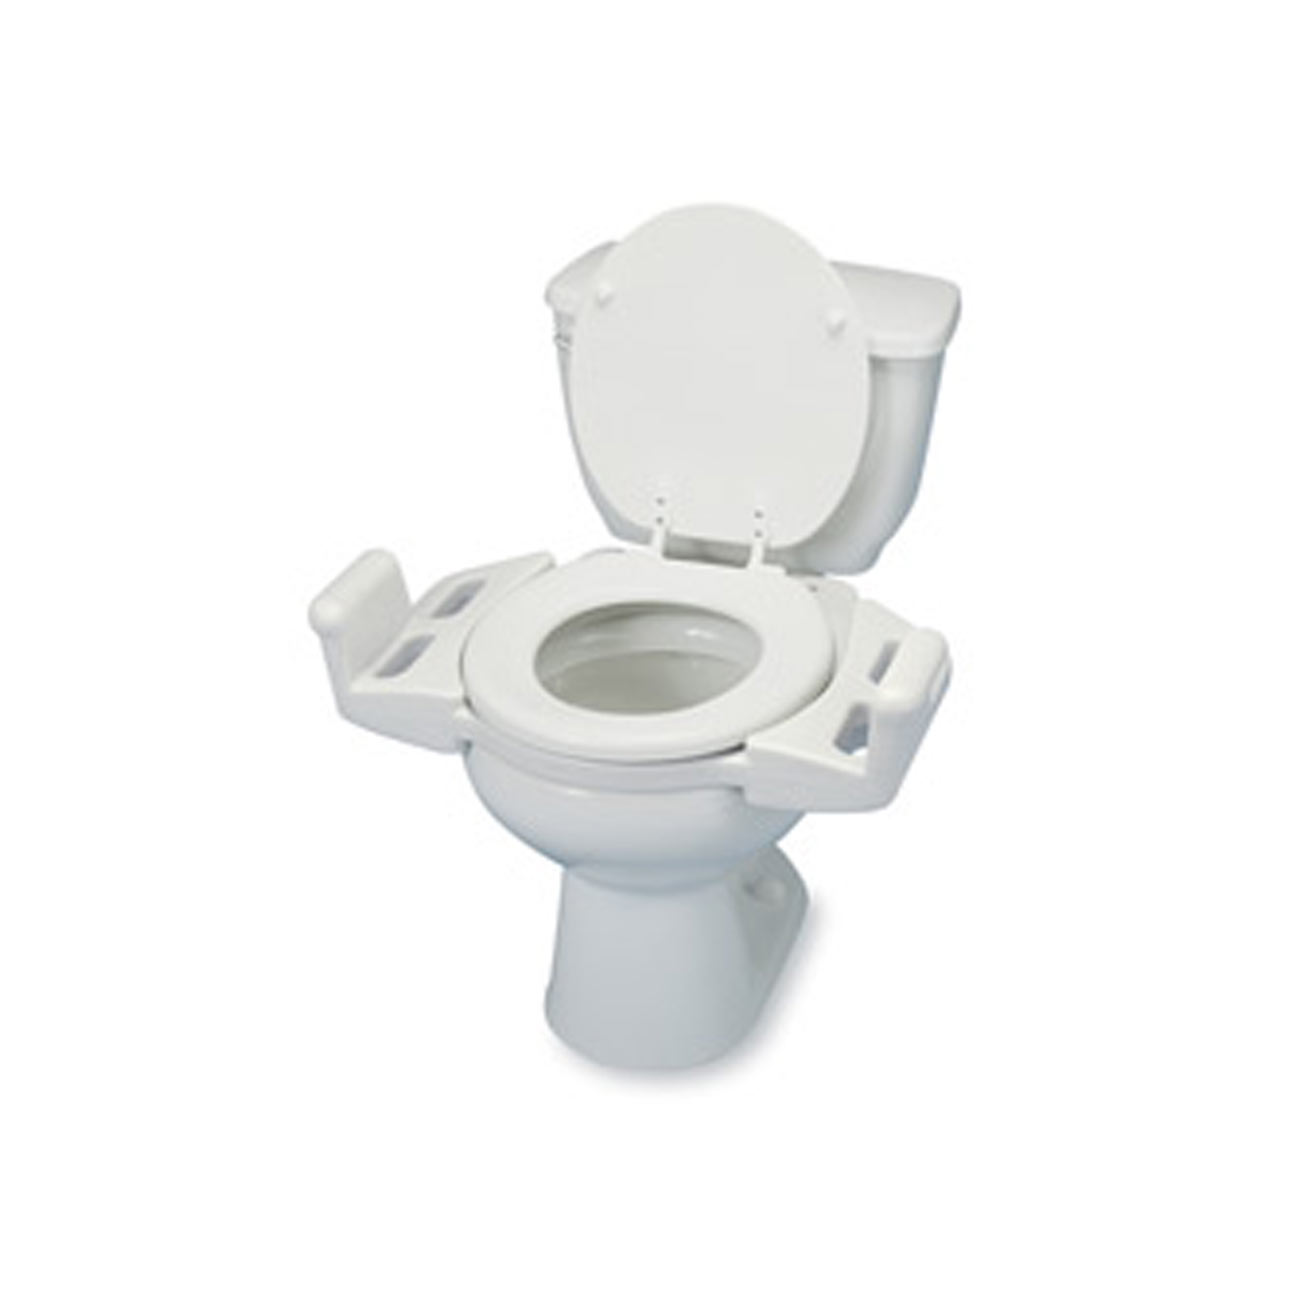 Lock-On Toilet Seat with Arms